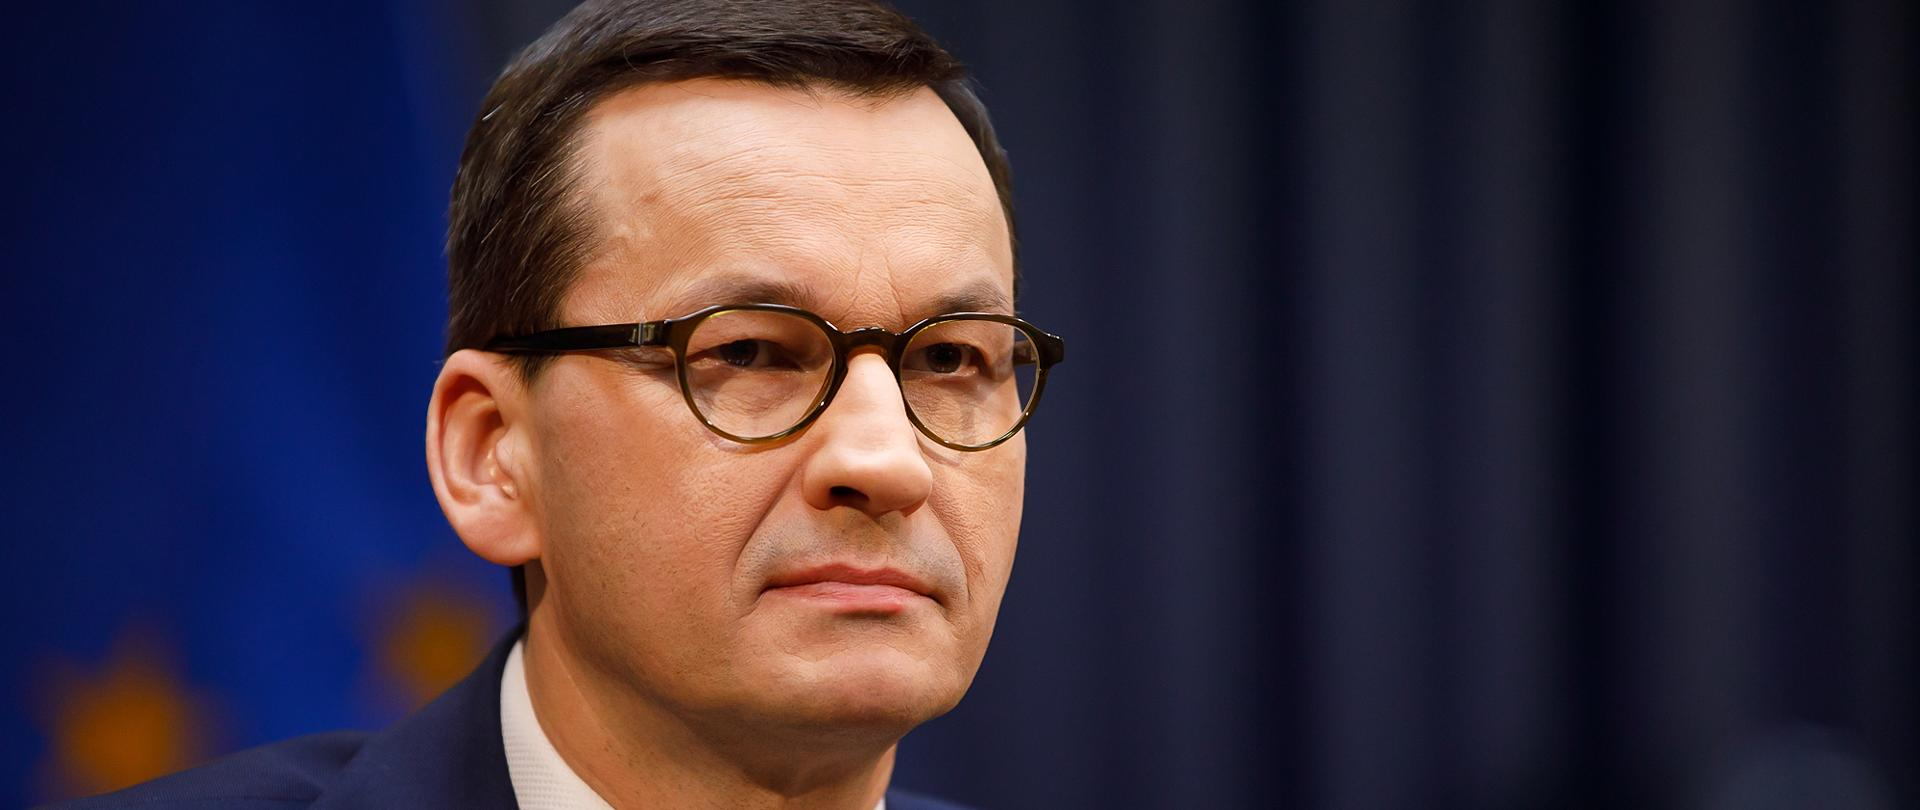 Prime Minister of the Republic of Poland Mateusz Morawiecki